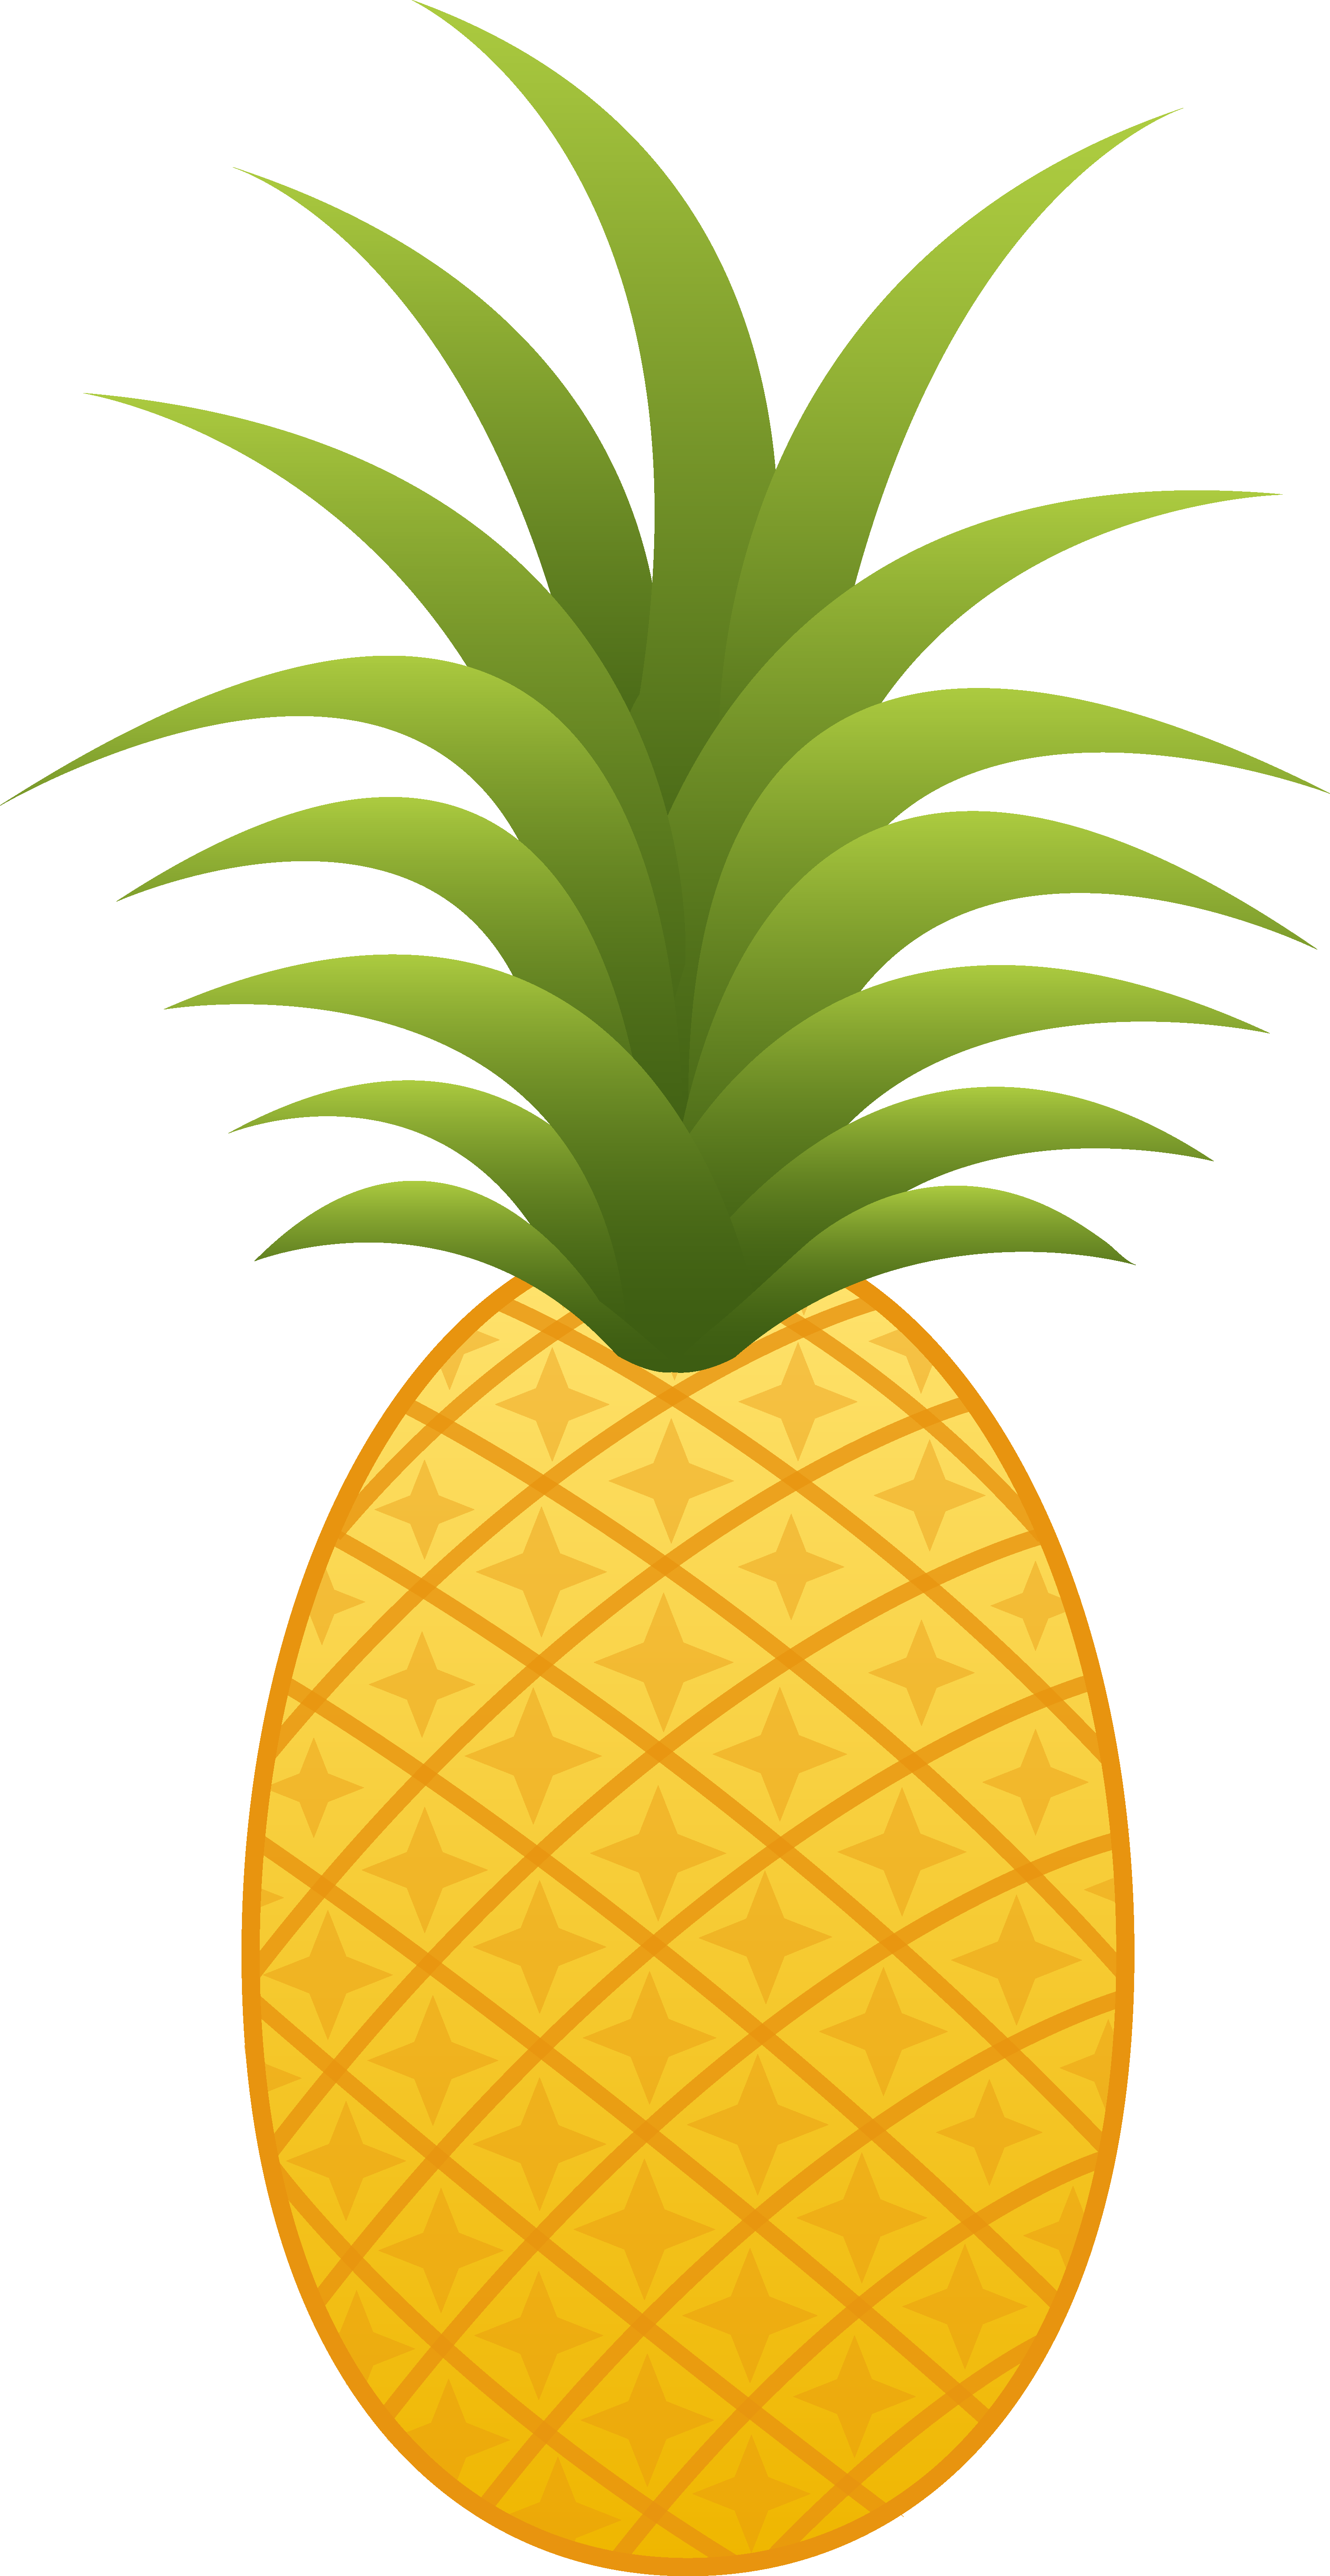 free funky pineapple clipart custom cliparts and others art rh pinterest co uk clipart pineapple free clipart pineapple with sunglasses